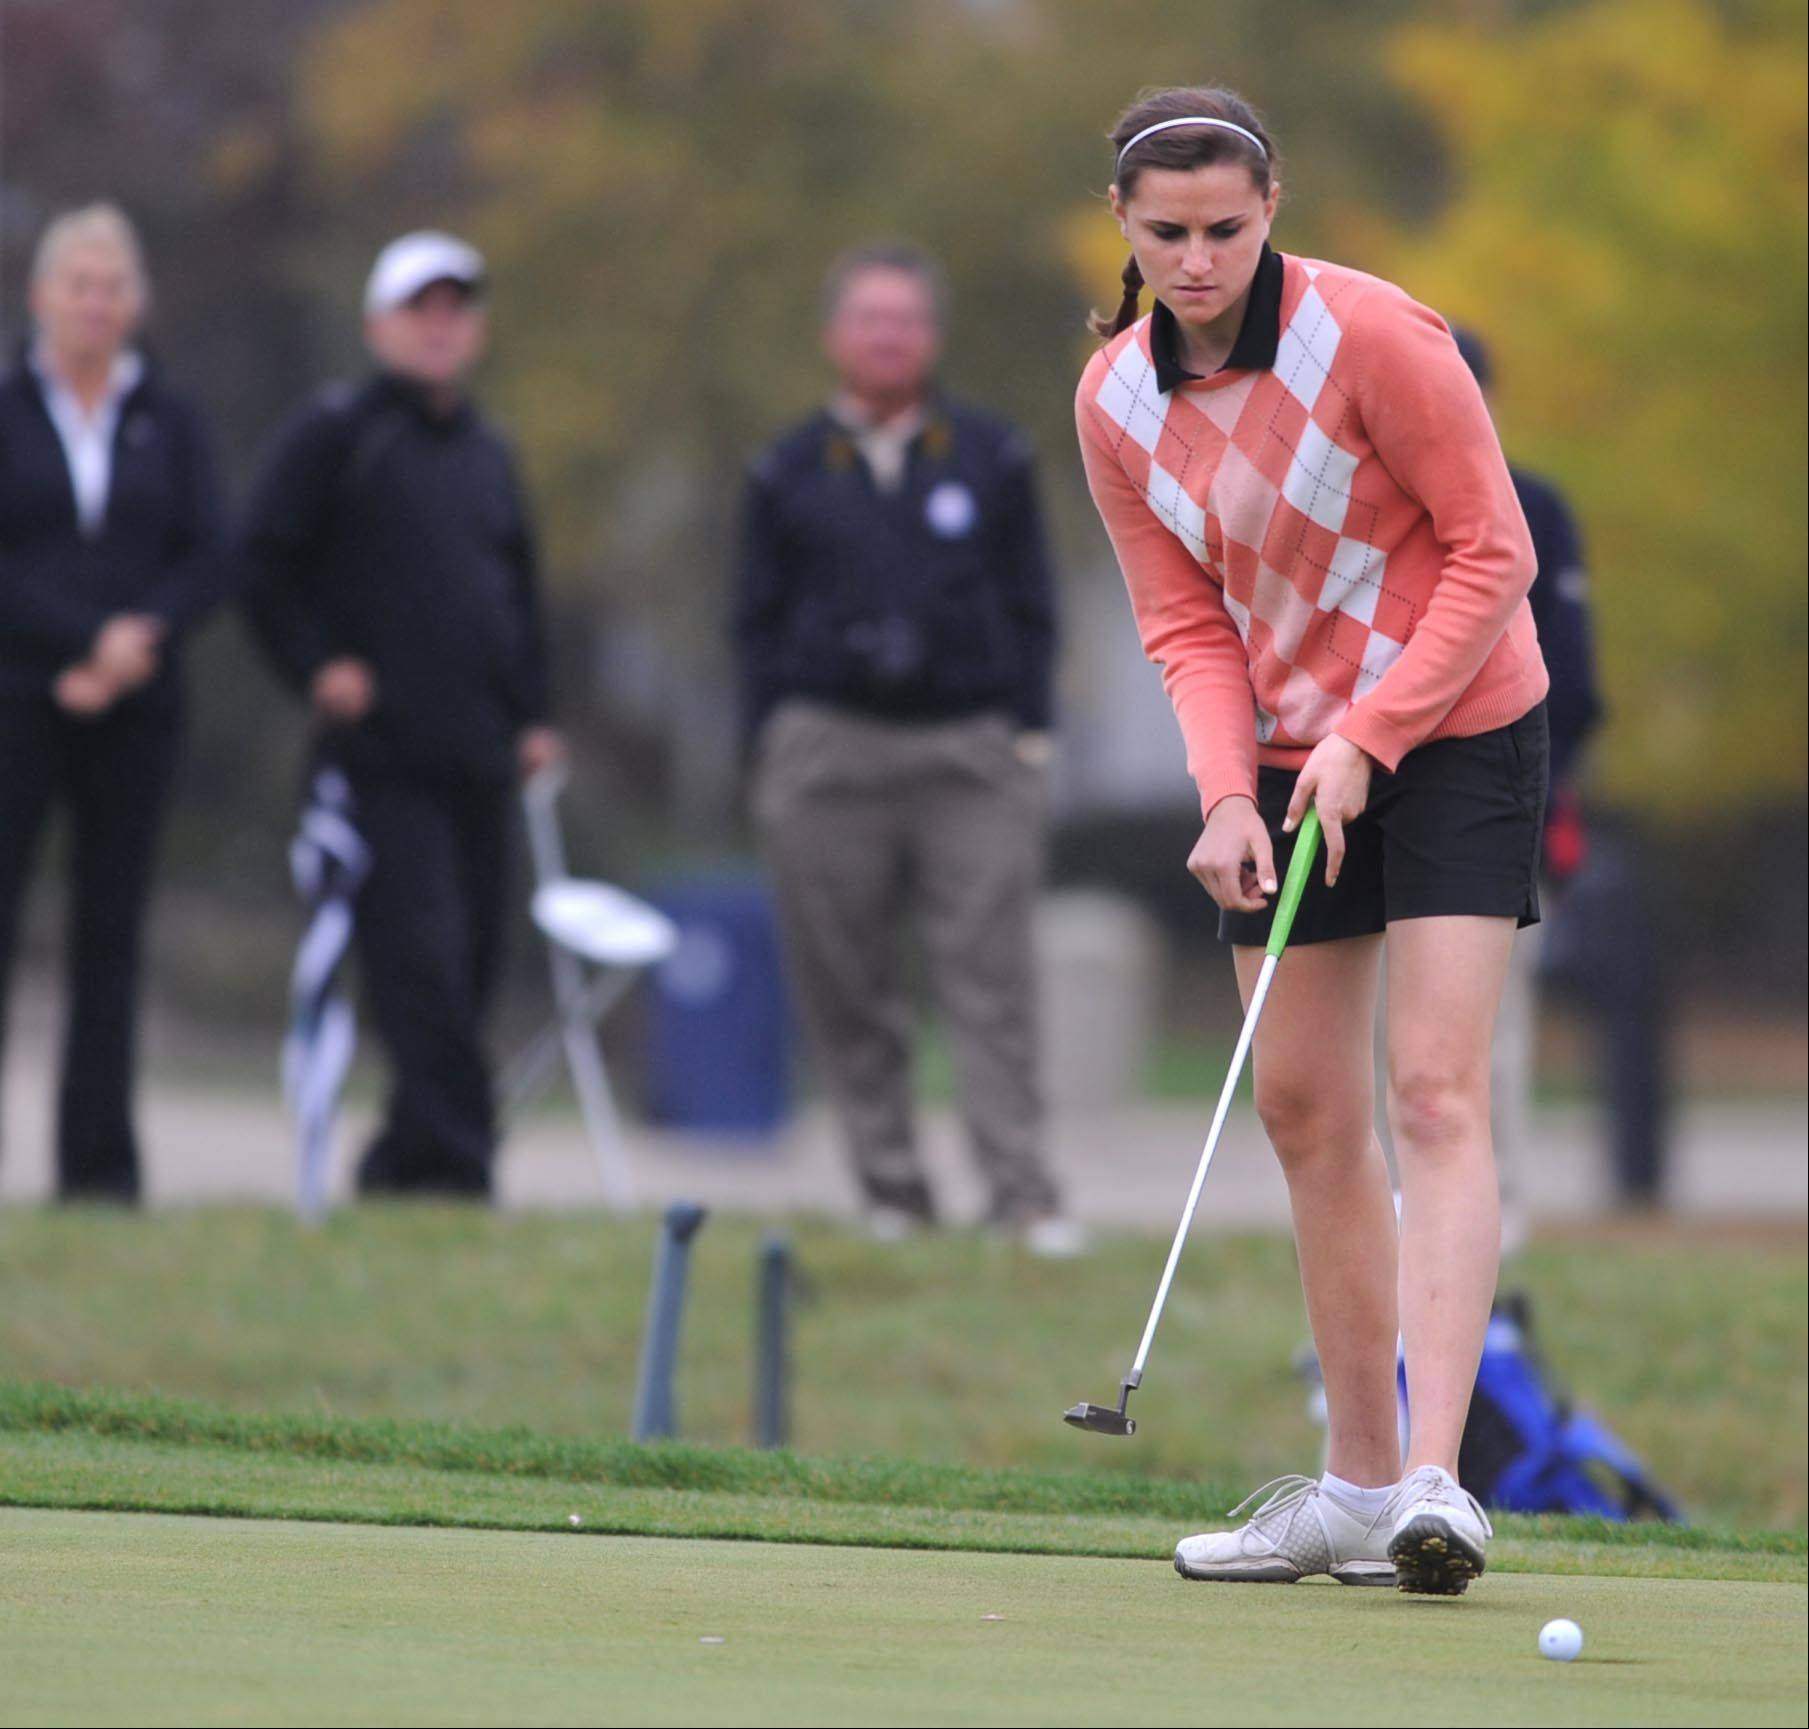 St. Charles East's Paige Jordan watches her putt drop on the second green at the Regional golf tournament Wednesday at the Golf Club of Illinois in Algonquin.